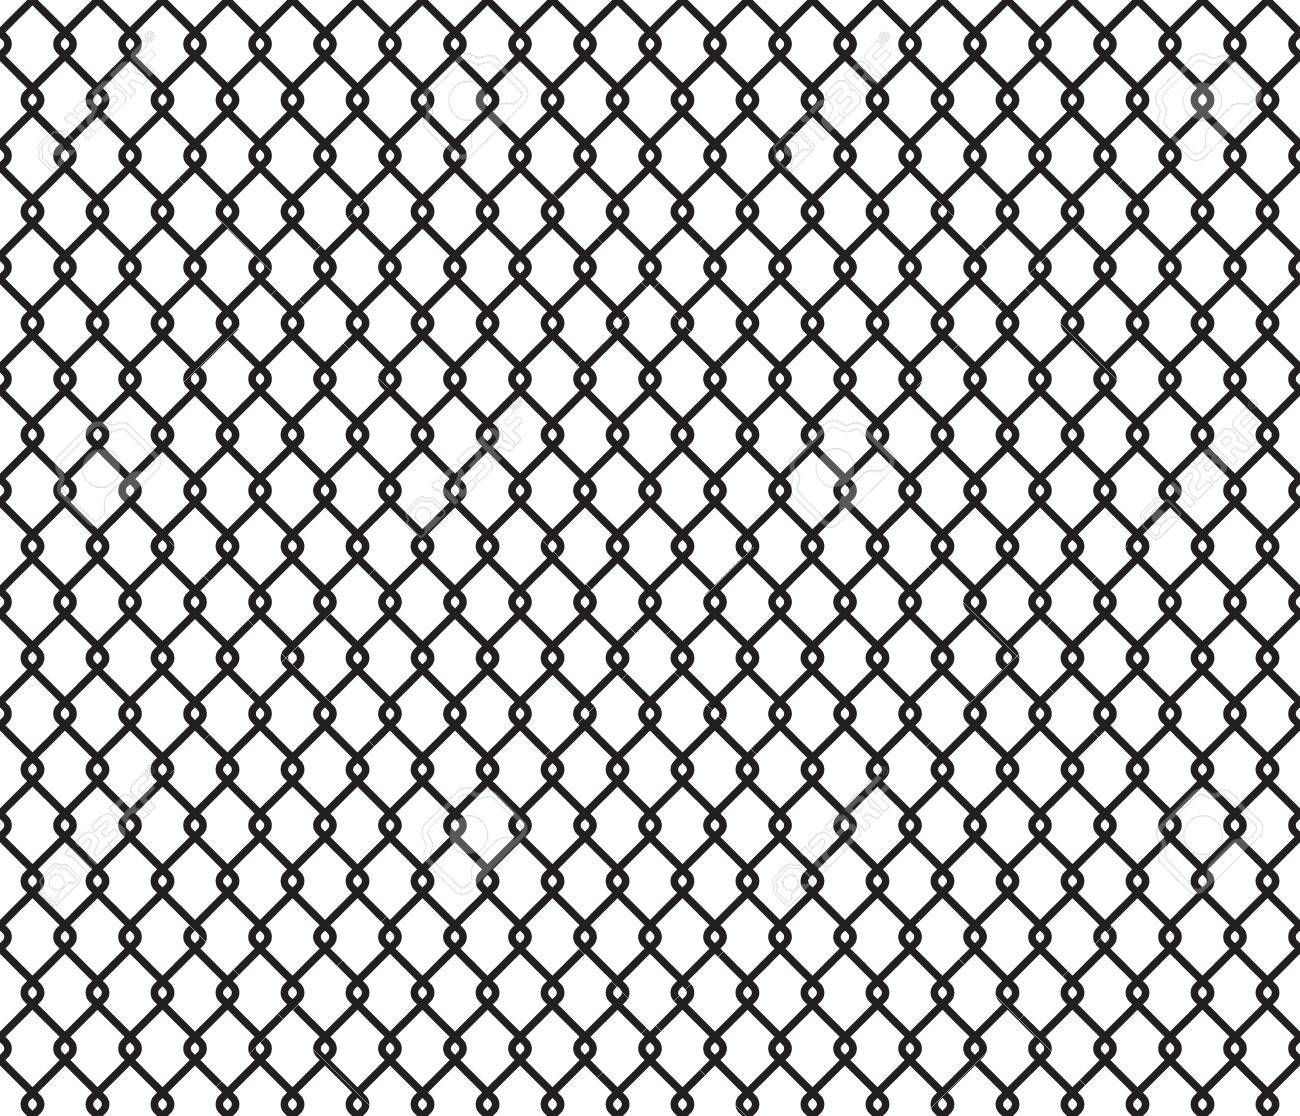 Contemporary Wire Background Image - Everything You Need to Know ...